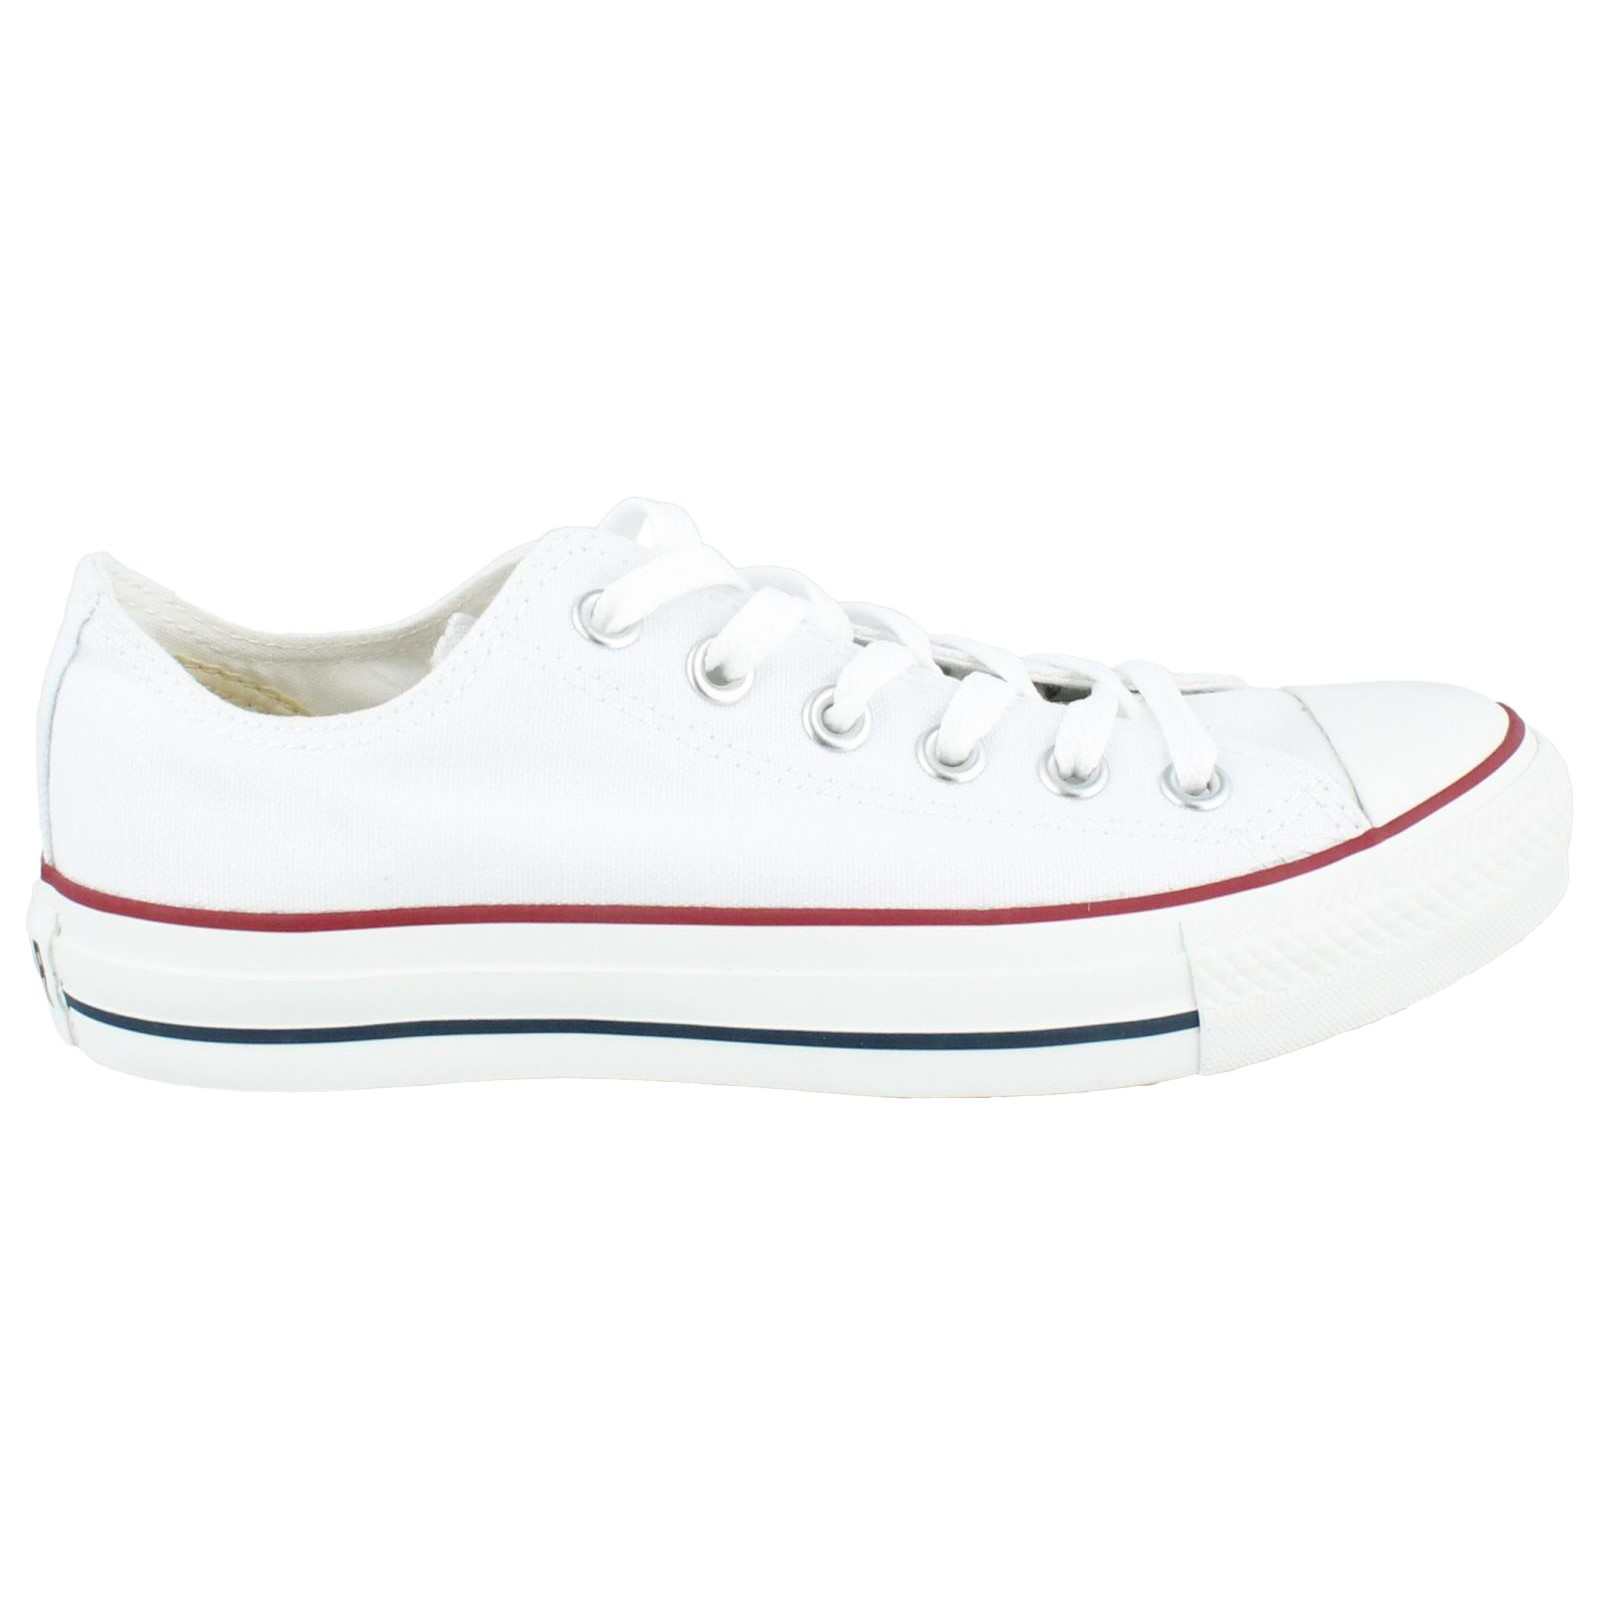 Unisex Converse, Chuck Taylor All Star Low